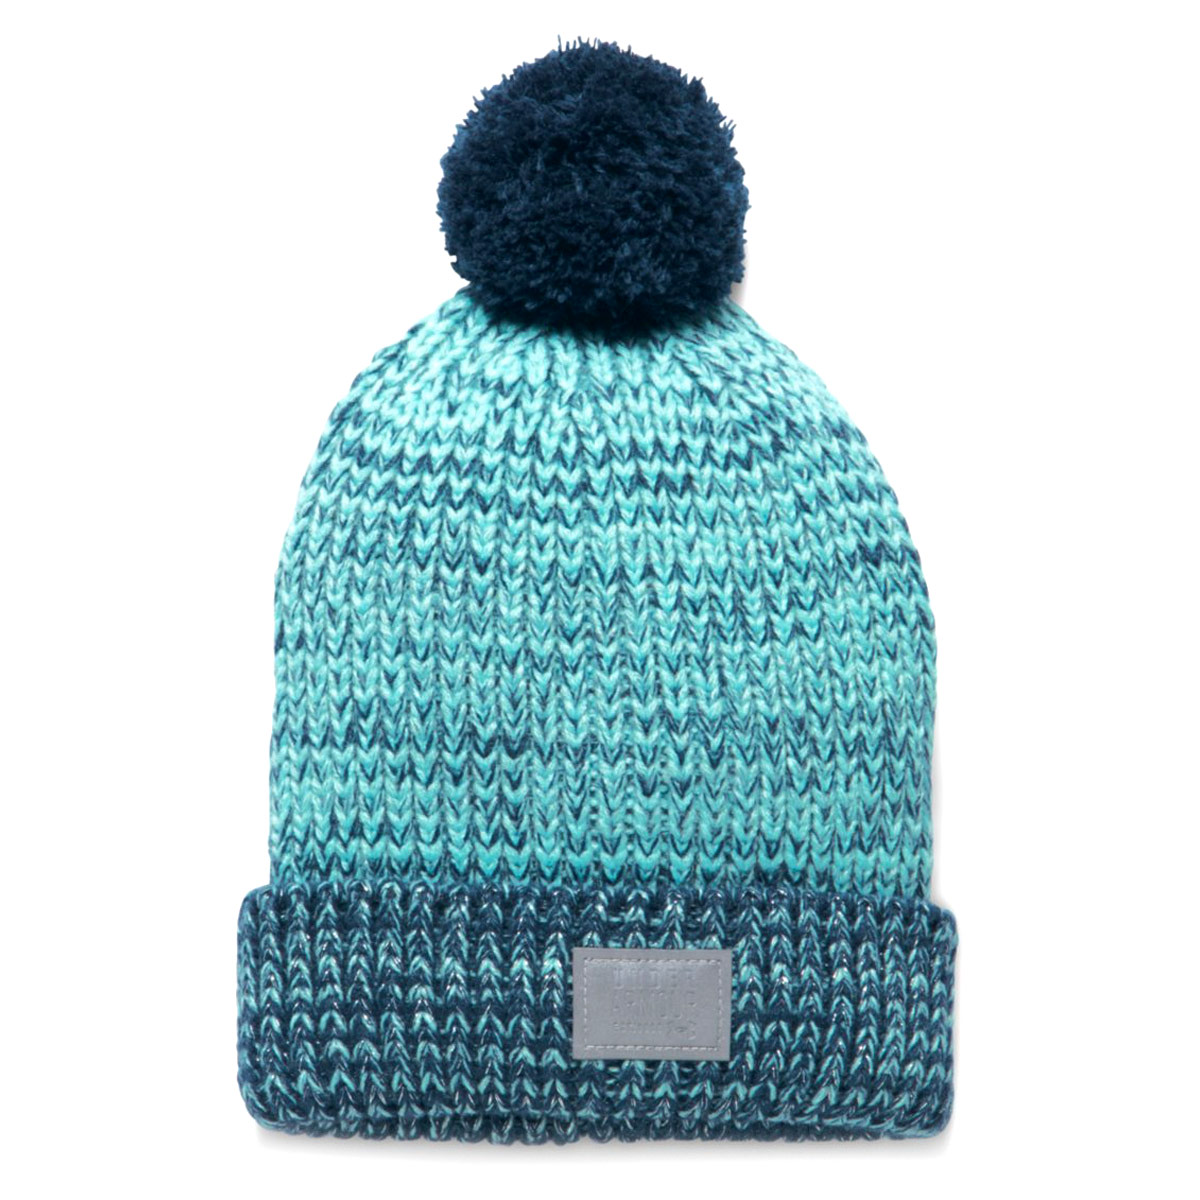 e547f1ec07c5c Under Armour Girls Shimmer Pom Beanie - Gorros - Azul